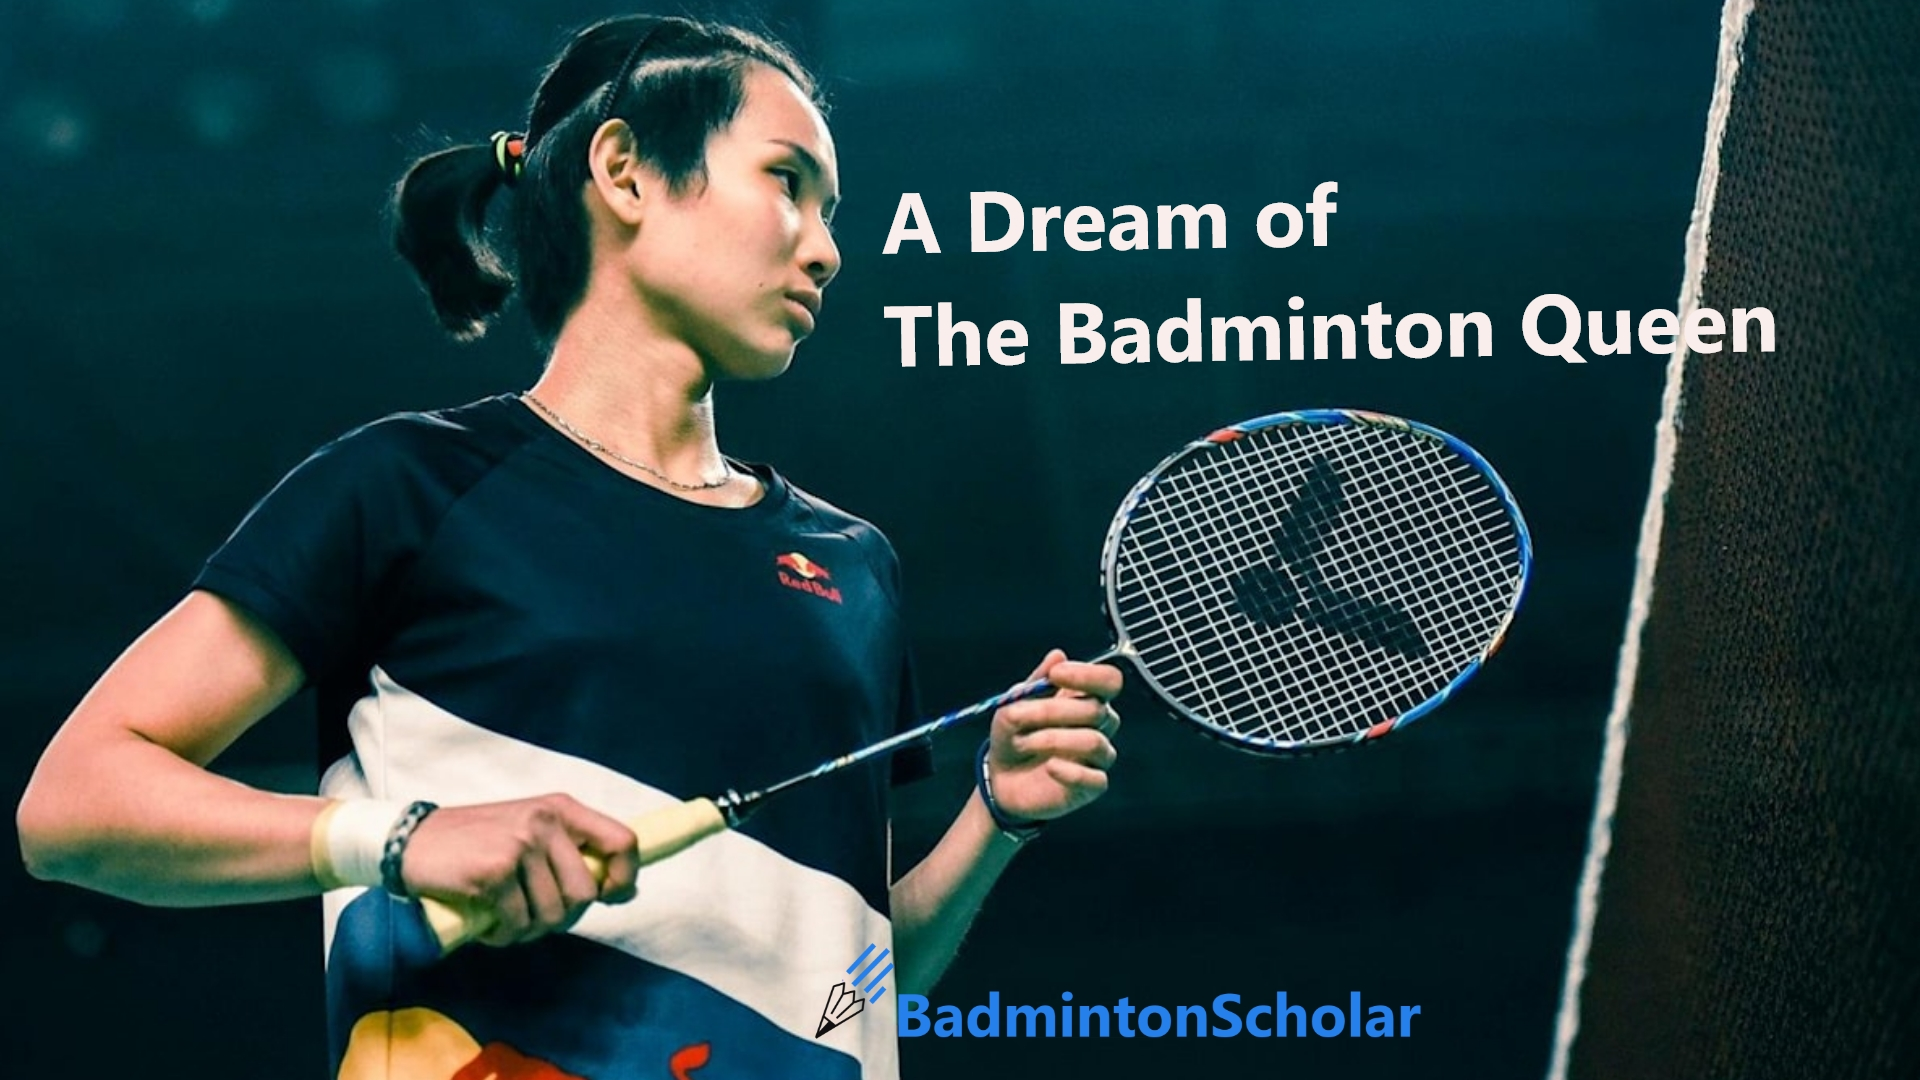 A Dream of the Badminton Queen - Tai Tzu Ying's Maiden Olympic medal would not be a mirage